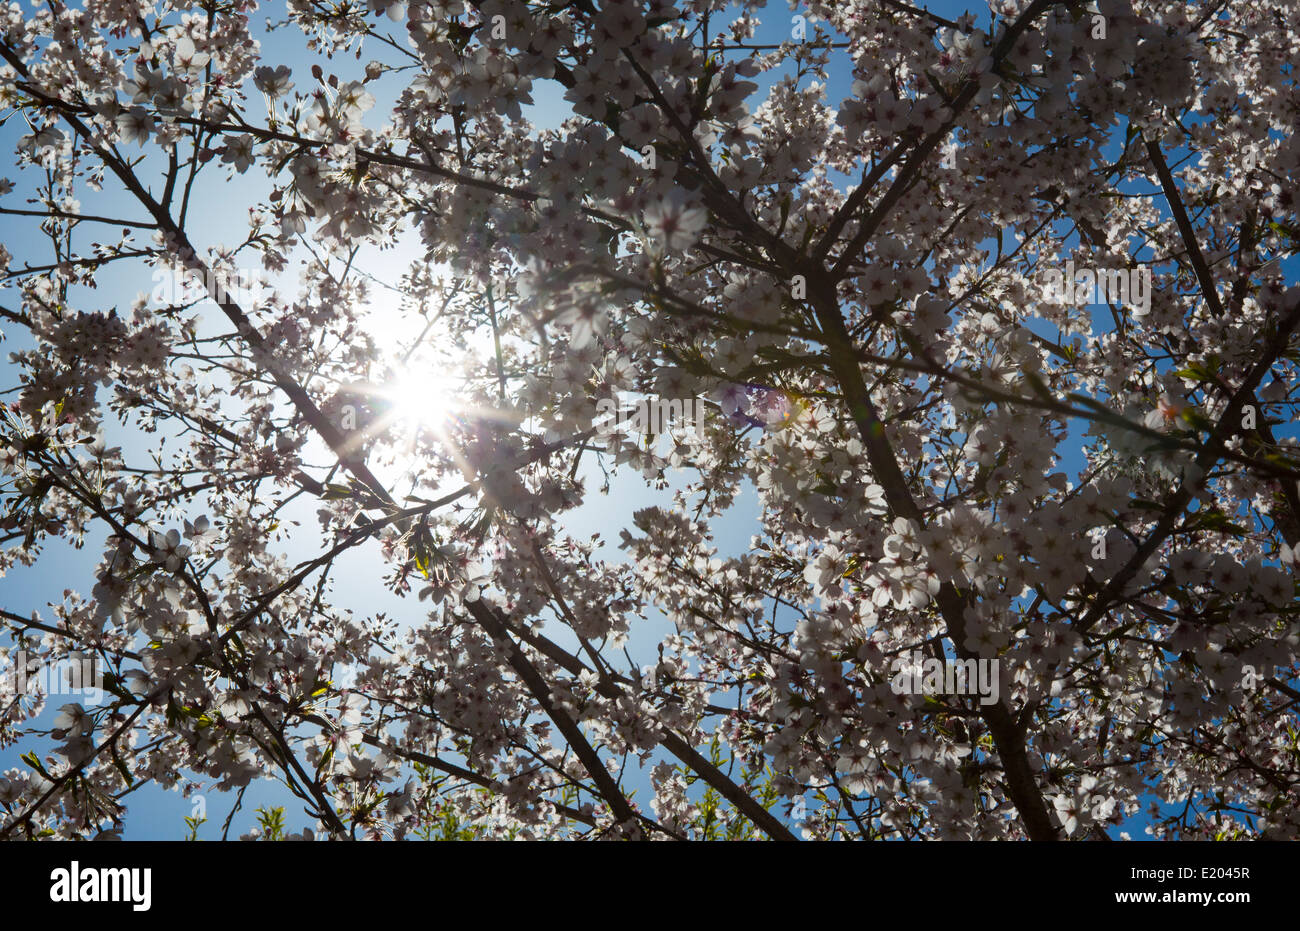 Lukla Nepal The sun shining through the blooming cherry blossoms near remote Mt Everest - Stock Image